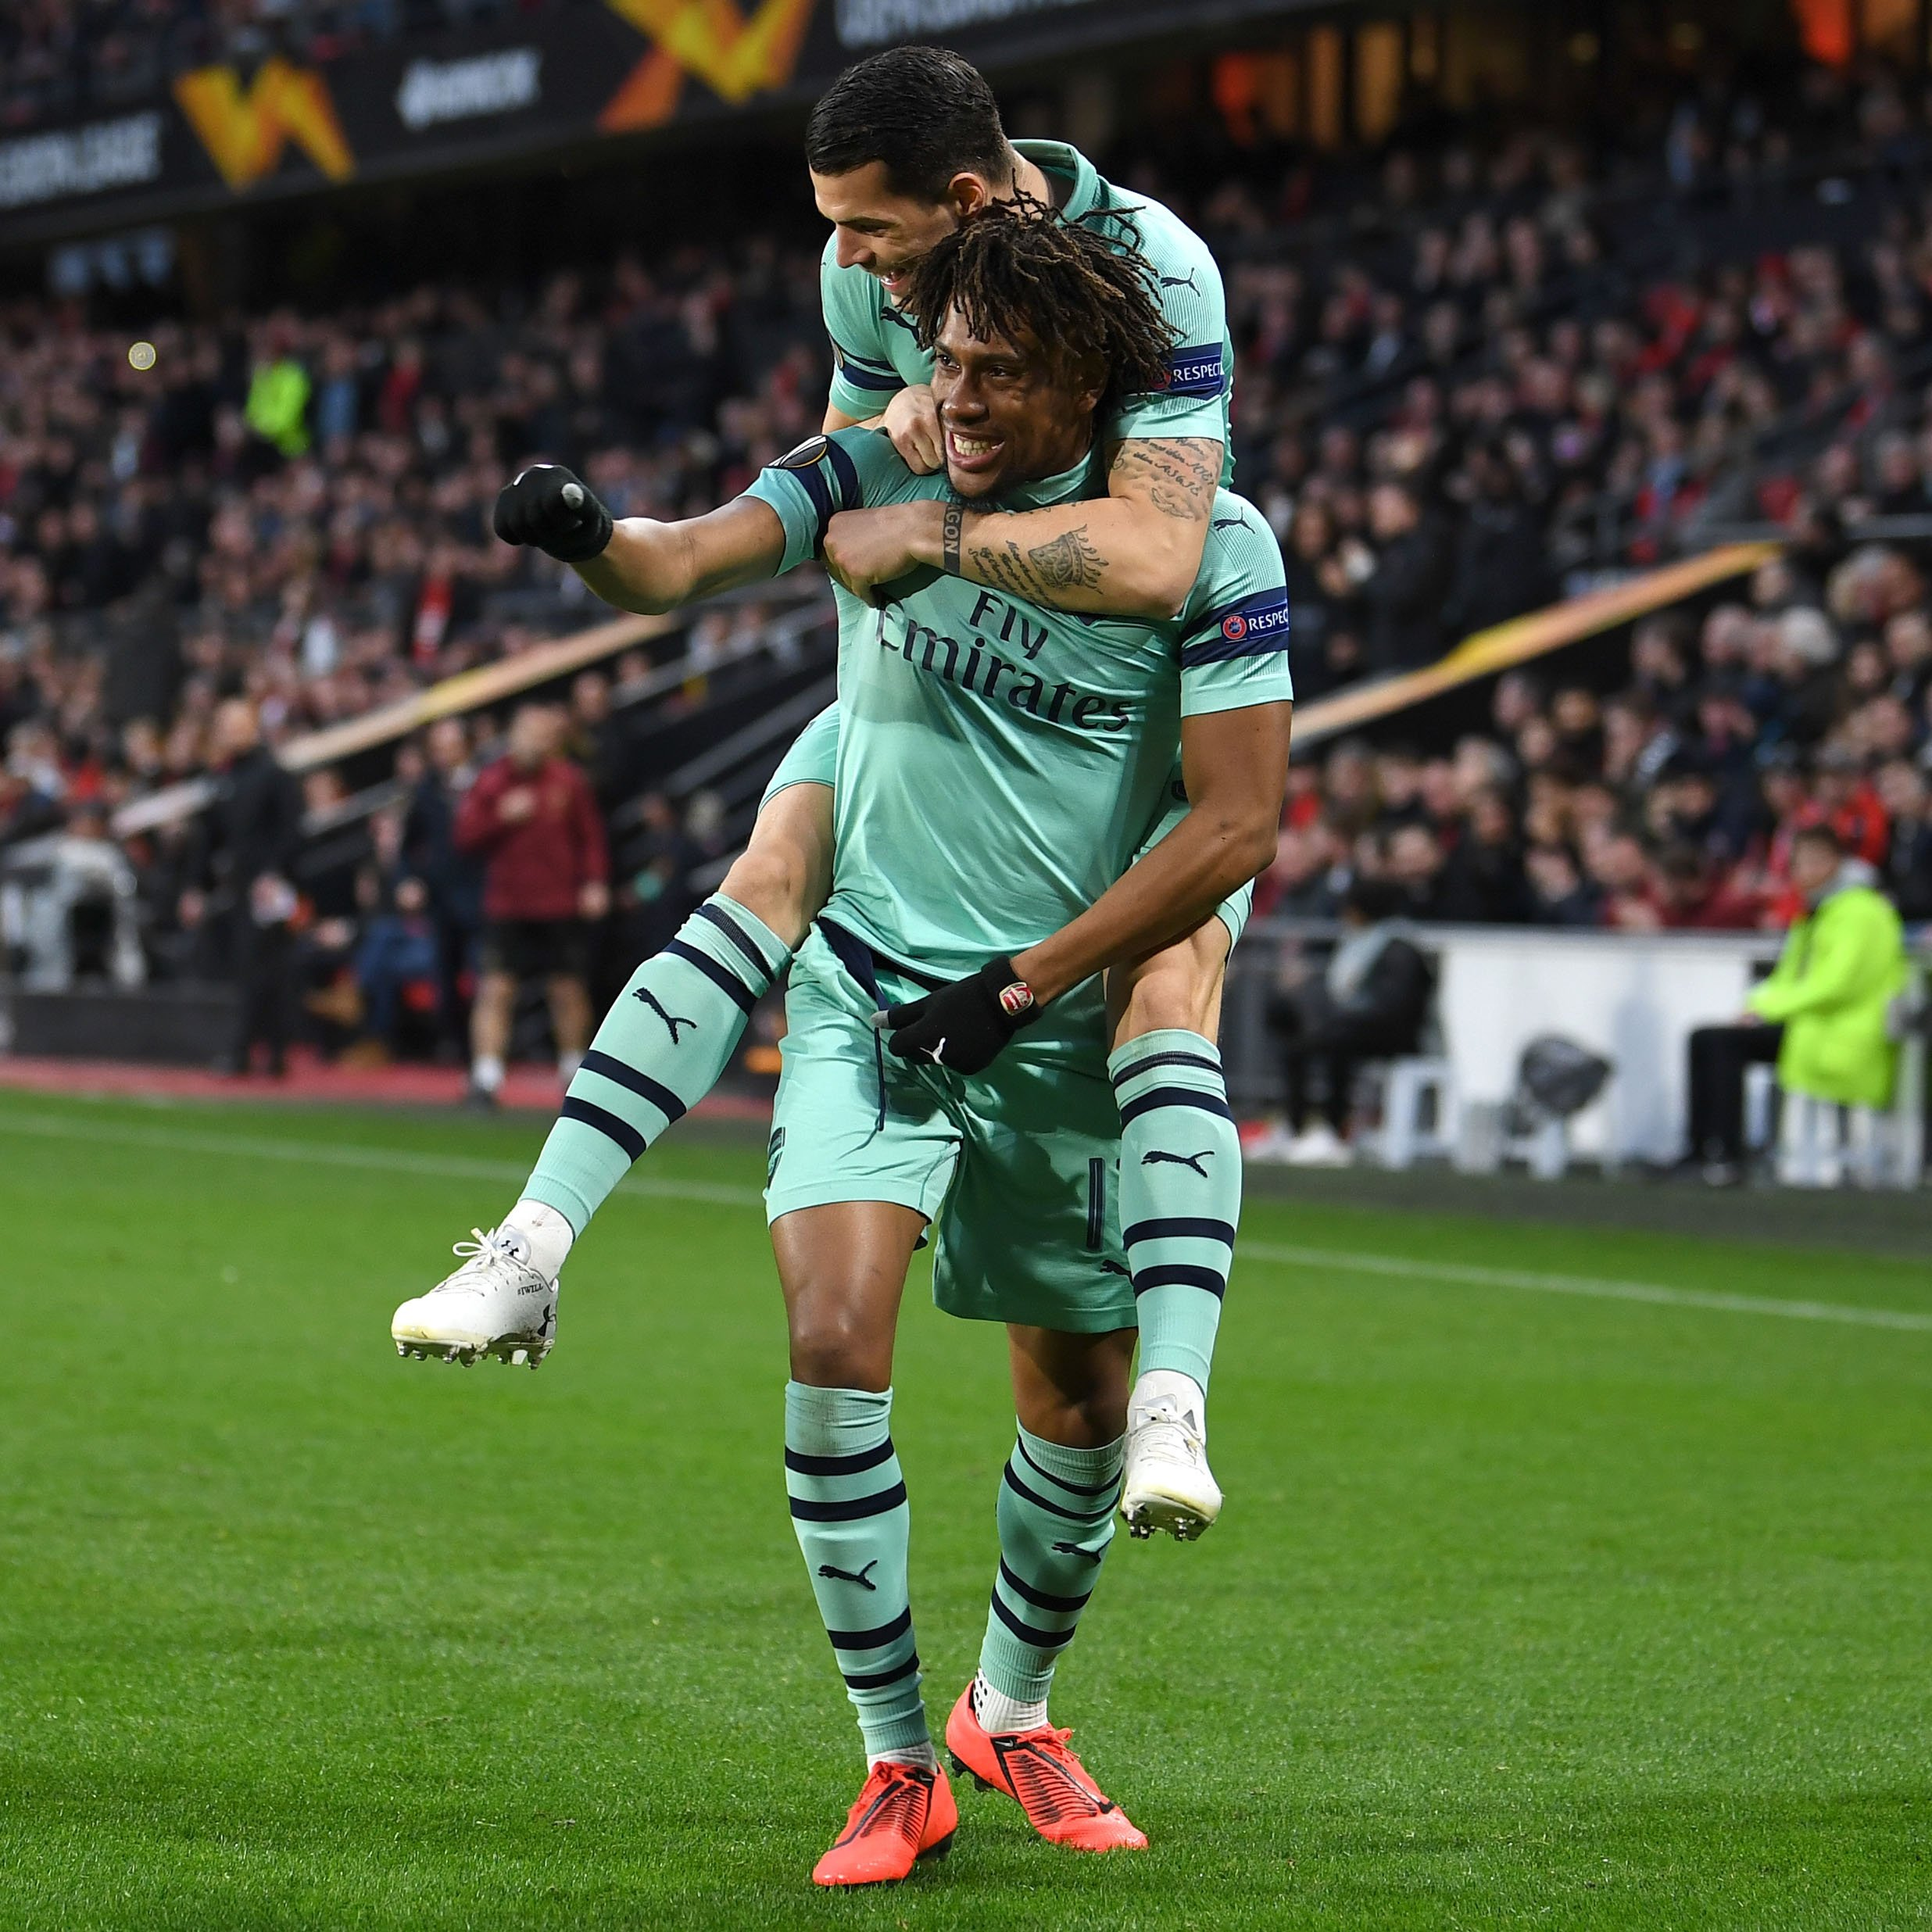 Europa League: Iwobi Looks To Bounce Back With Arsenal; Chukwueze Also Targets Q-Finals With Villarreal